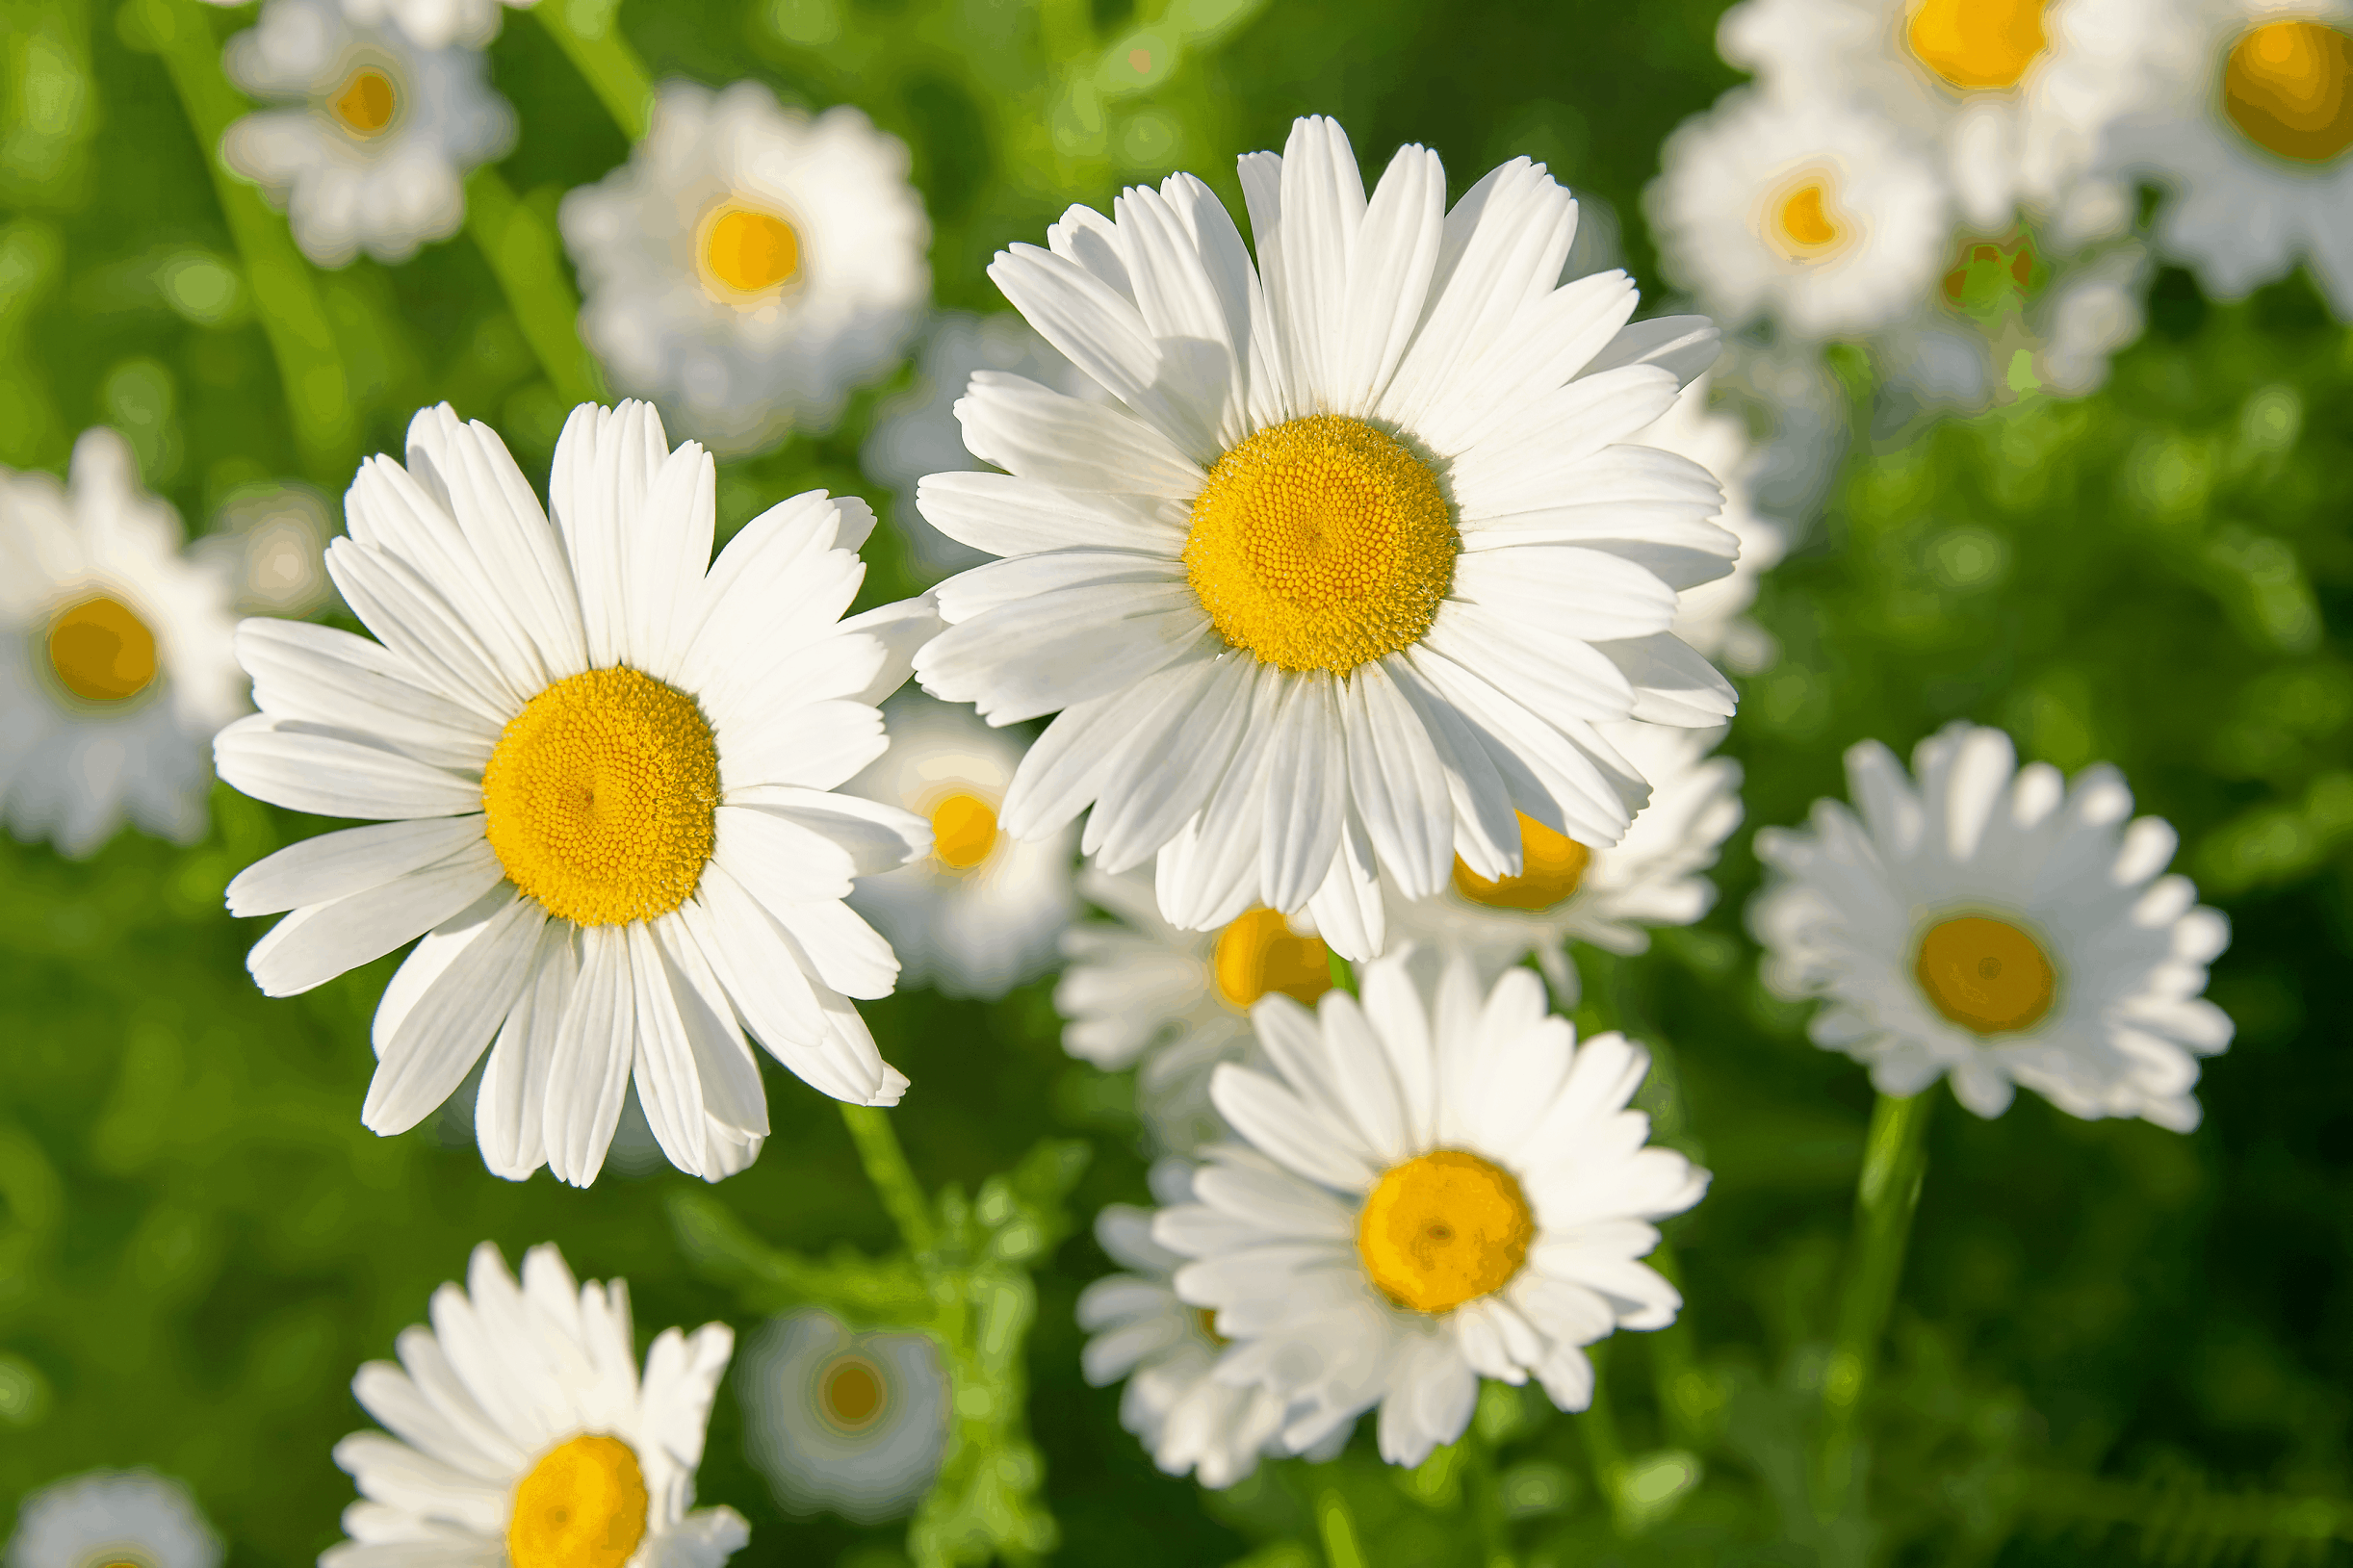 Daisy Symbolism and Meaning, Daisy Flowers in a Field